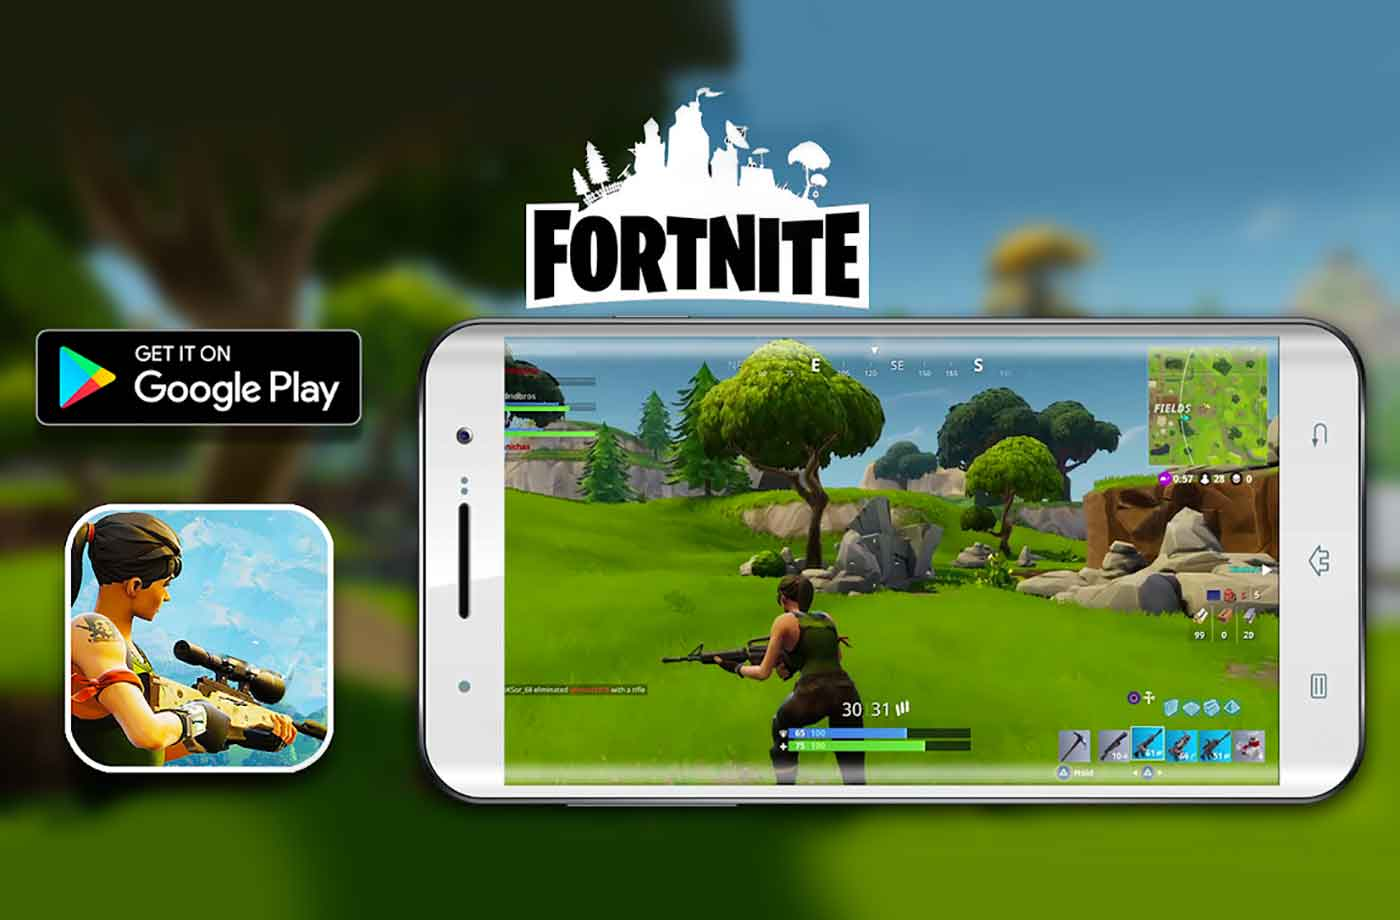 Fortnite for mobile android no verification